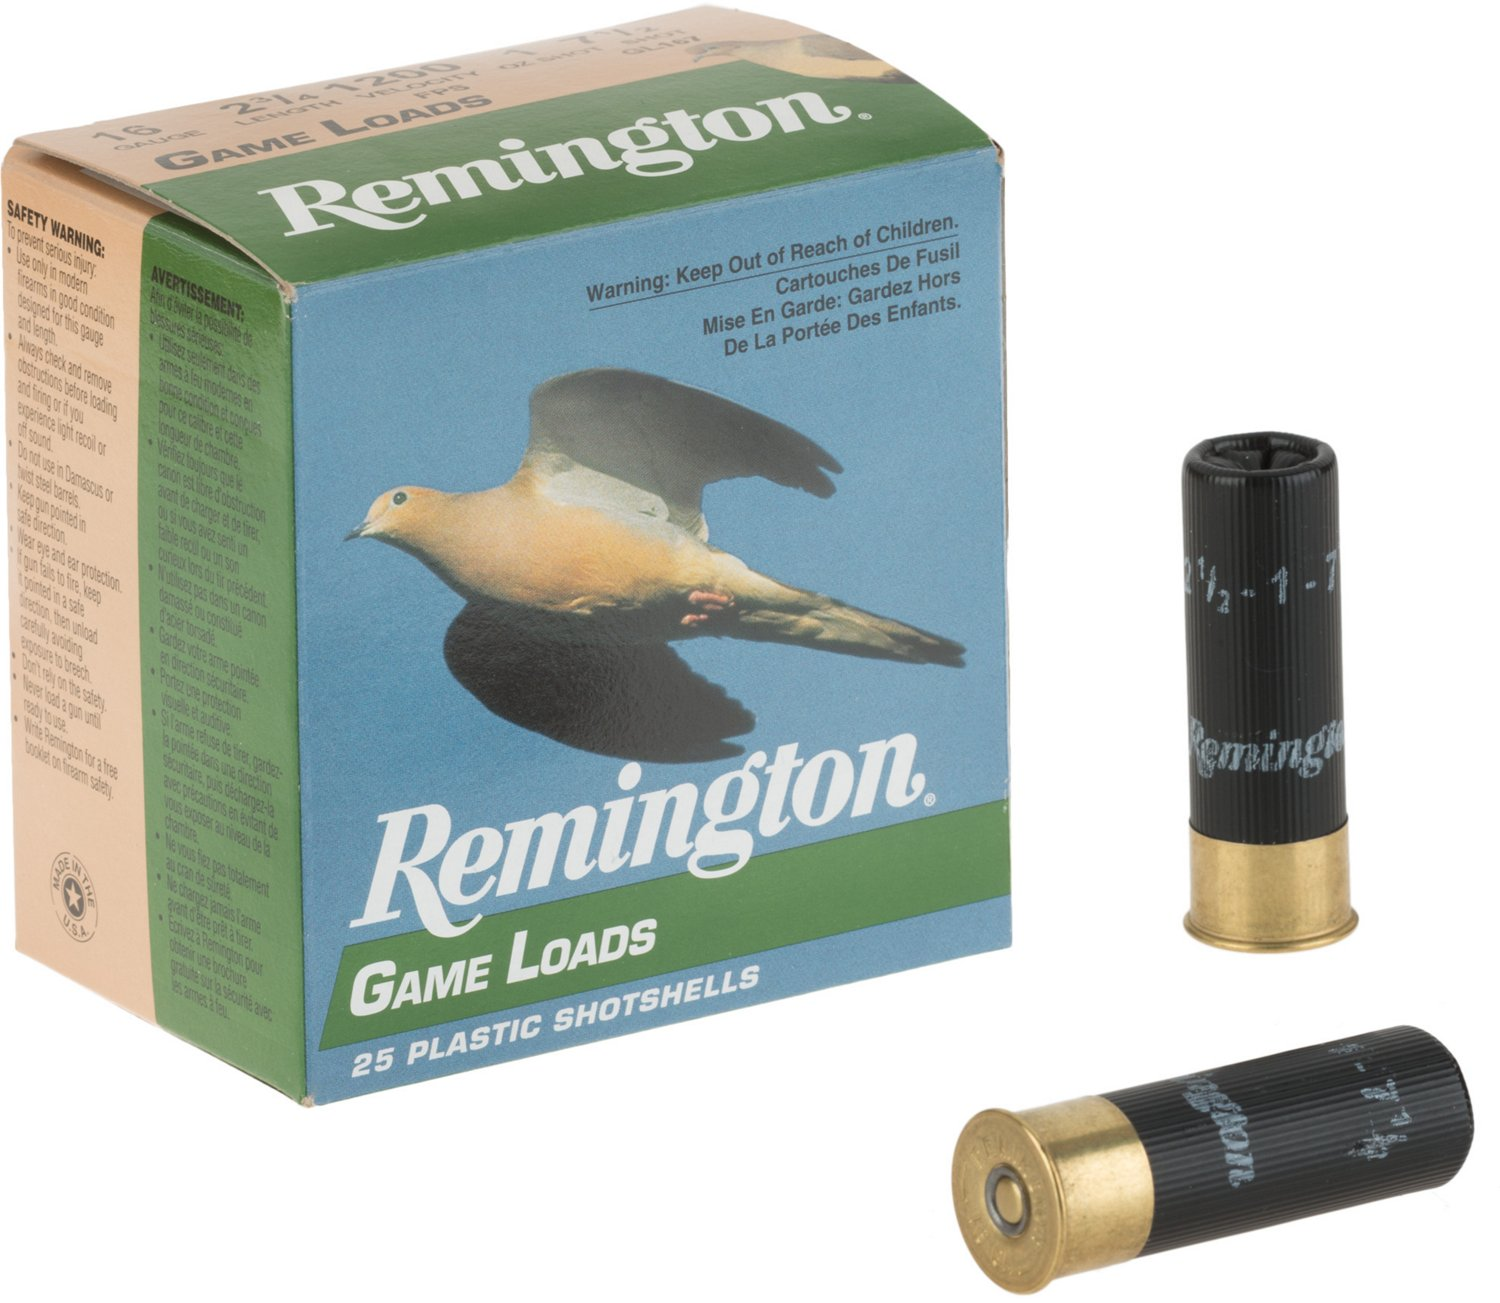 Remington 16 Gauge Upland Lead Game Loads - view number 2